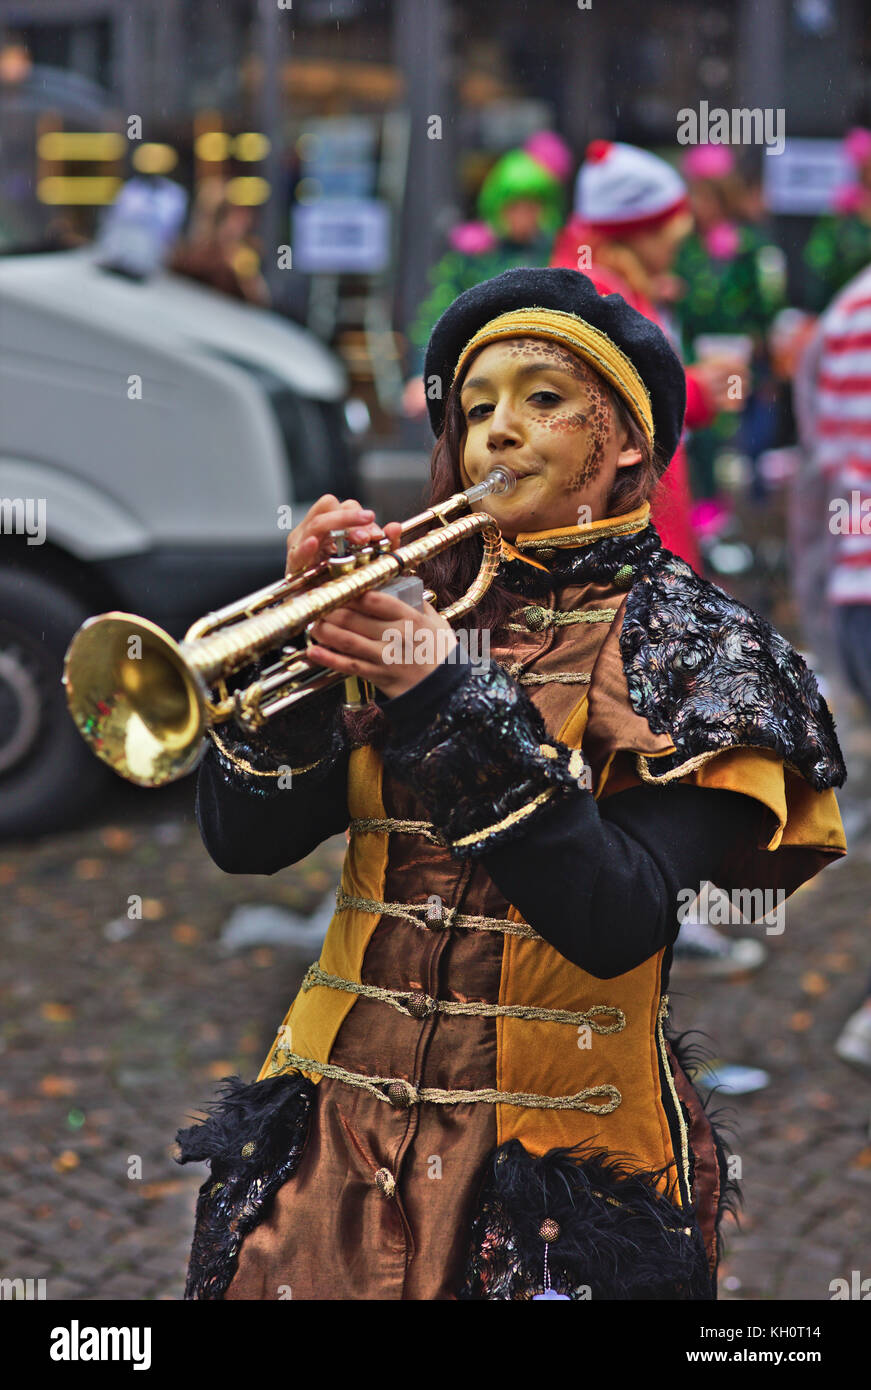 Cologne, Germany, 11 Nov, 2017, Cologne traditionally opens the carnival season Nov. 11th every year. People dressed - Stock Image